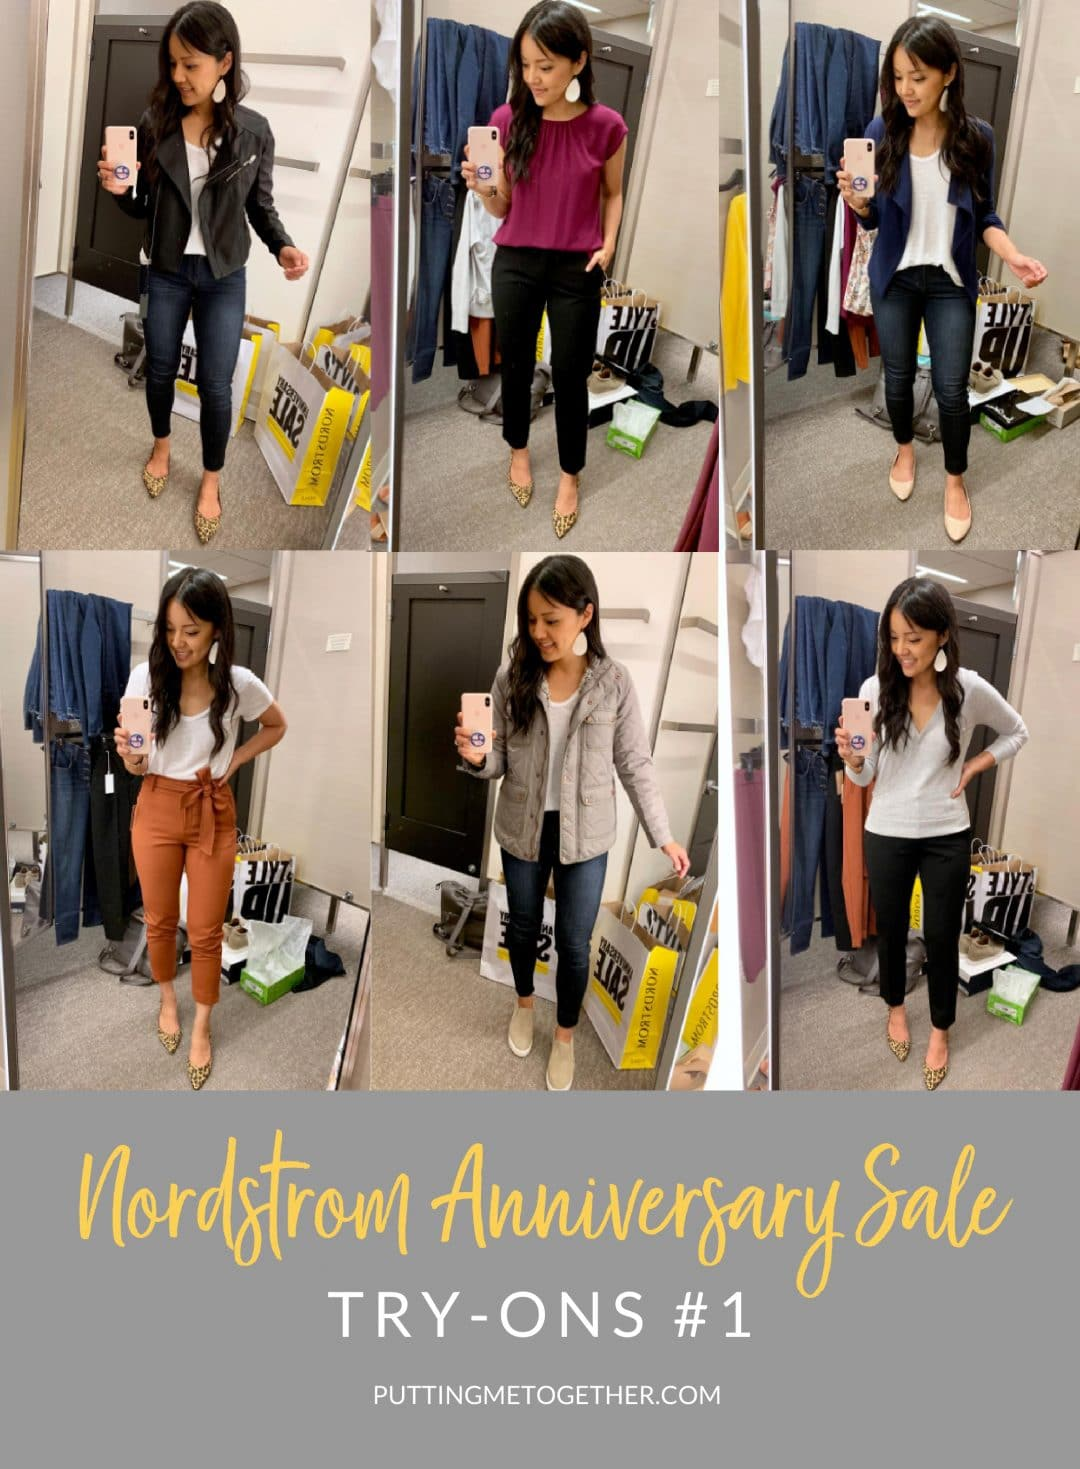 Nordstrom Anniversary Sale Try Ons #1 - Fall Casual Staples under $50, Outerwear, and Workwear